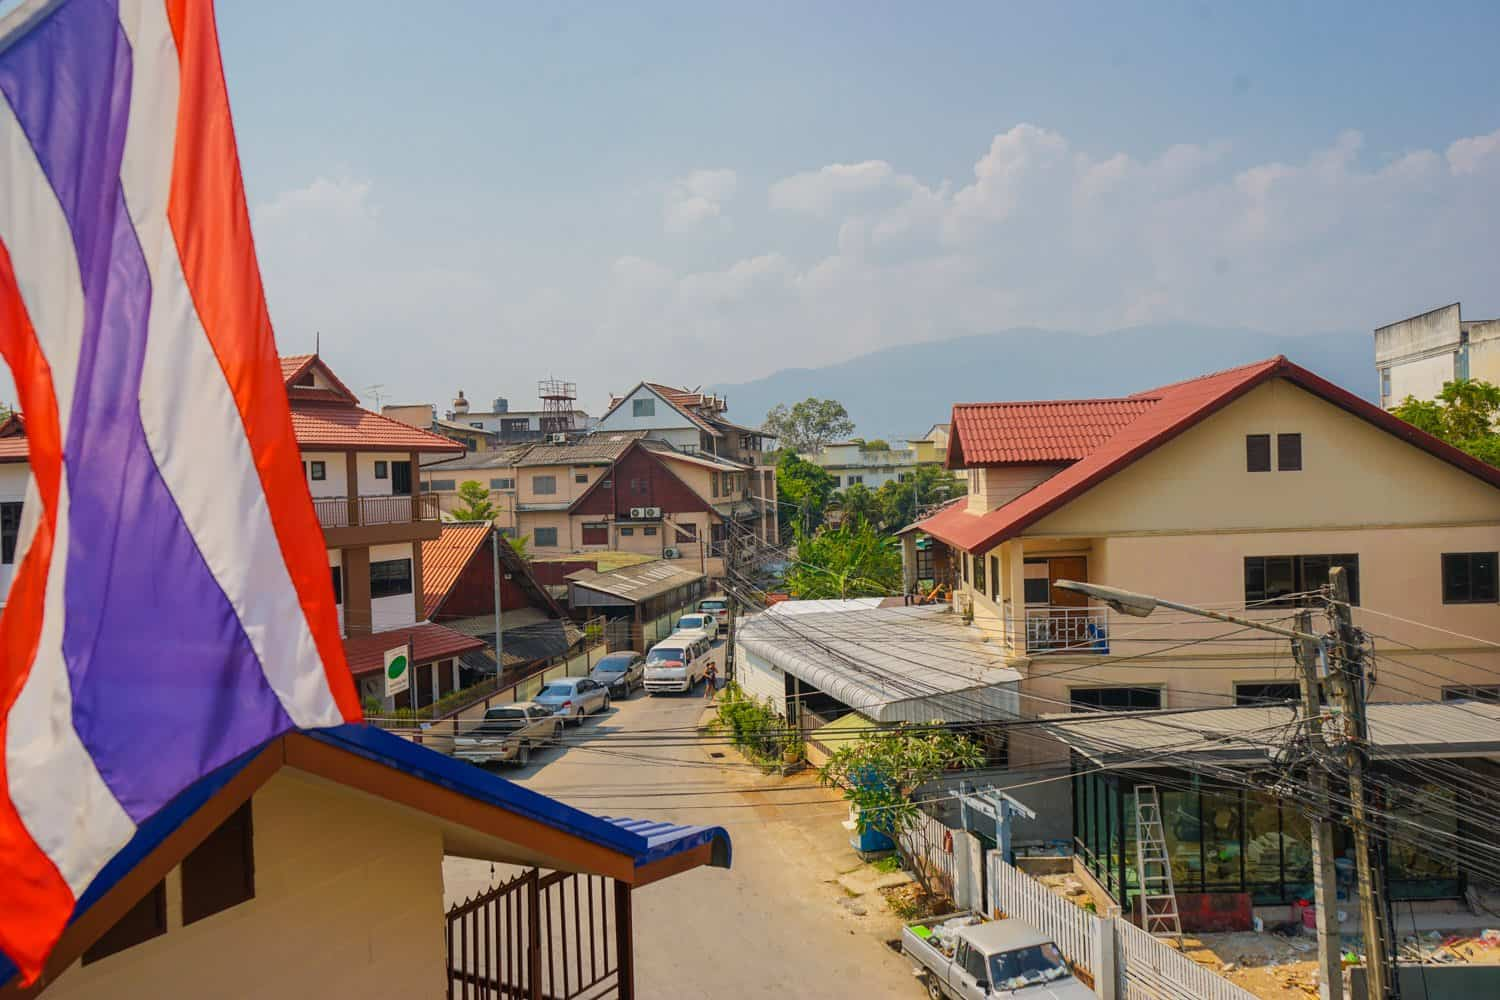 Chiang Mai old town views with Thai flag